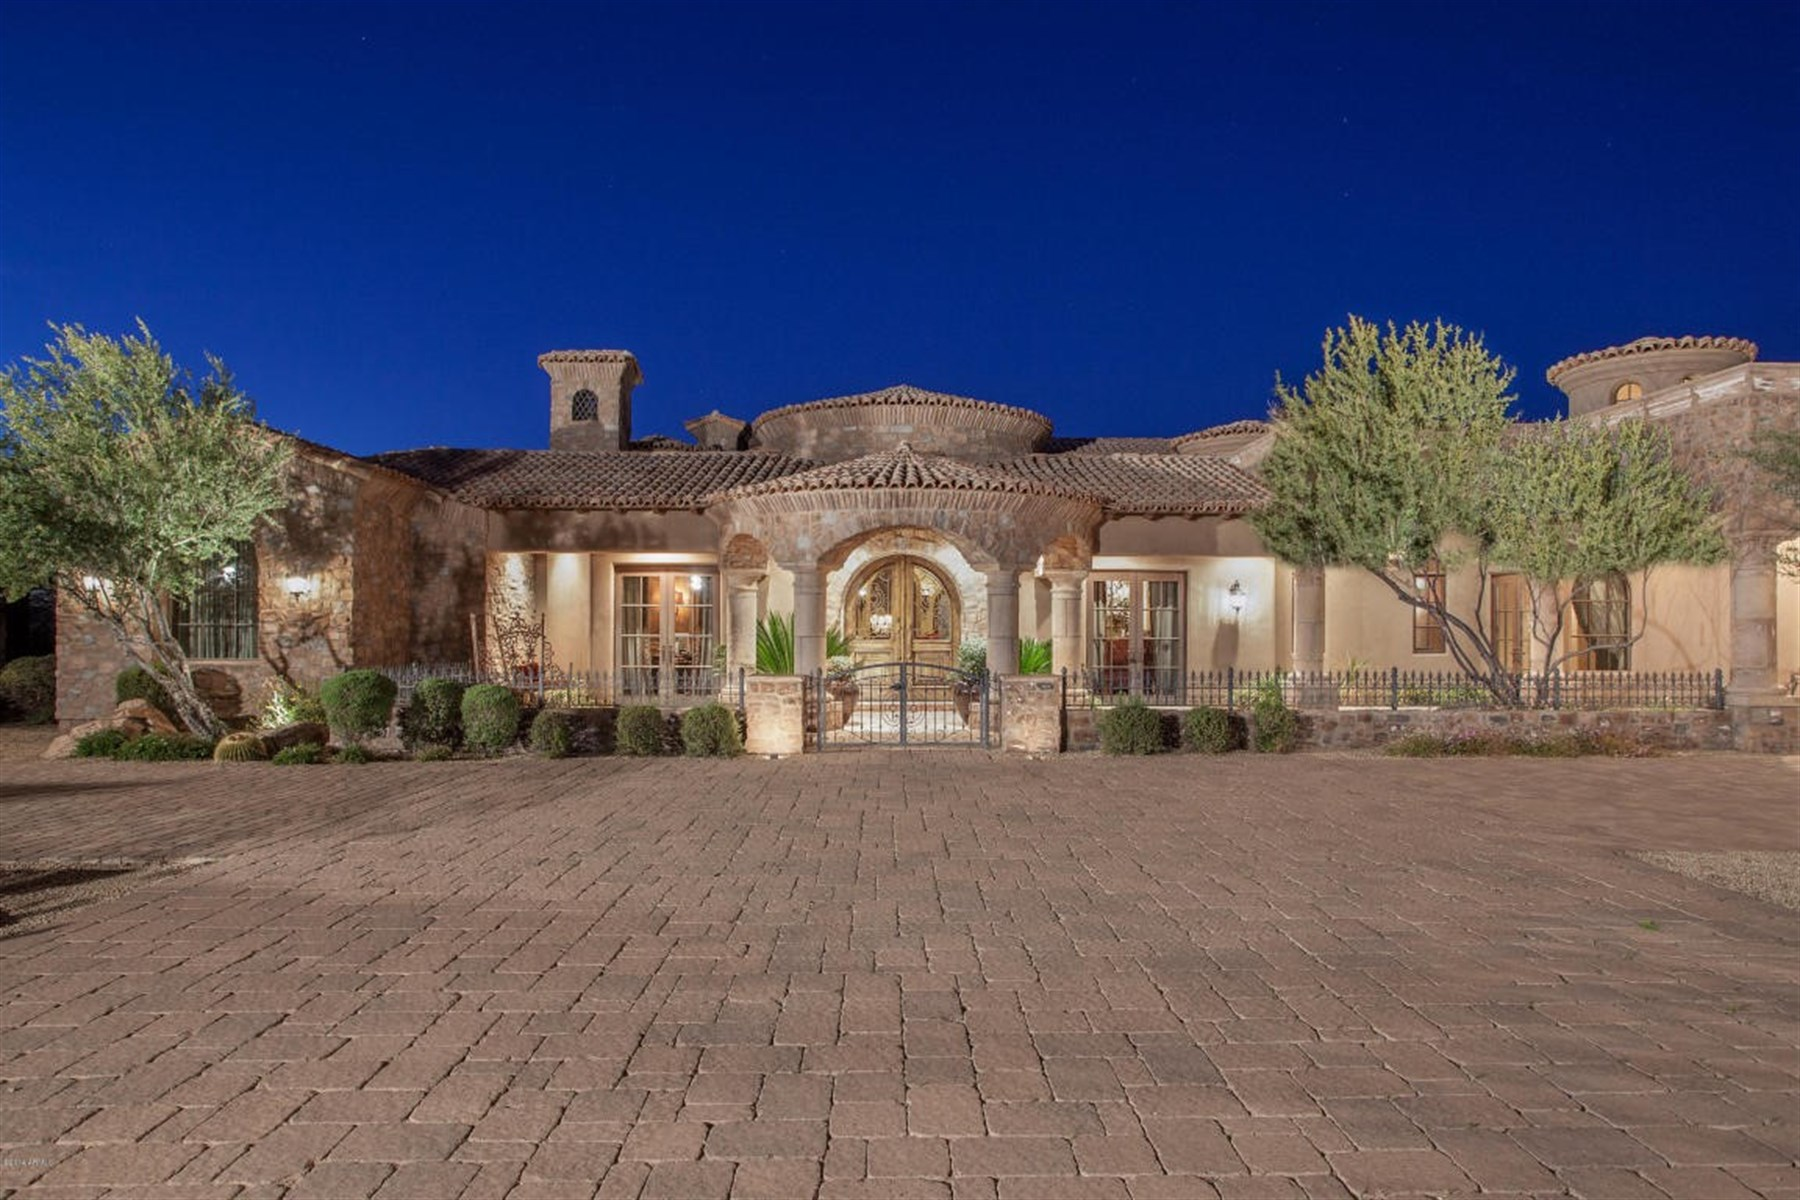 Moradia para Venda às Incredible sprawling estate situated on 8.75 acres of beautiful Sonoran Desert 8143 E Stagecoach Pass Scottsdale, Arizona, 85266 Estados Unidos